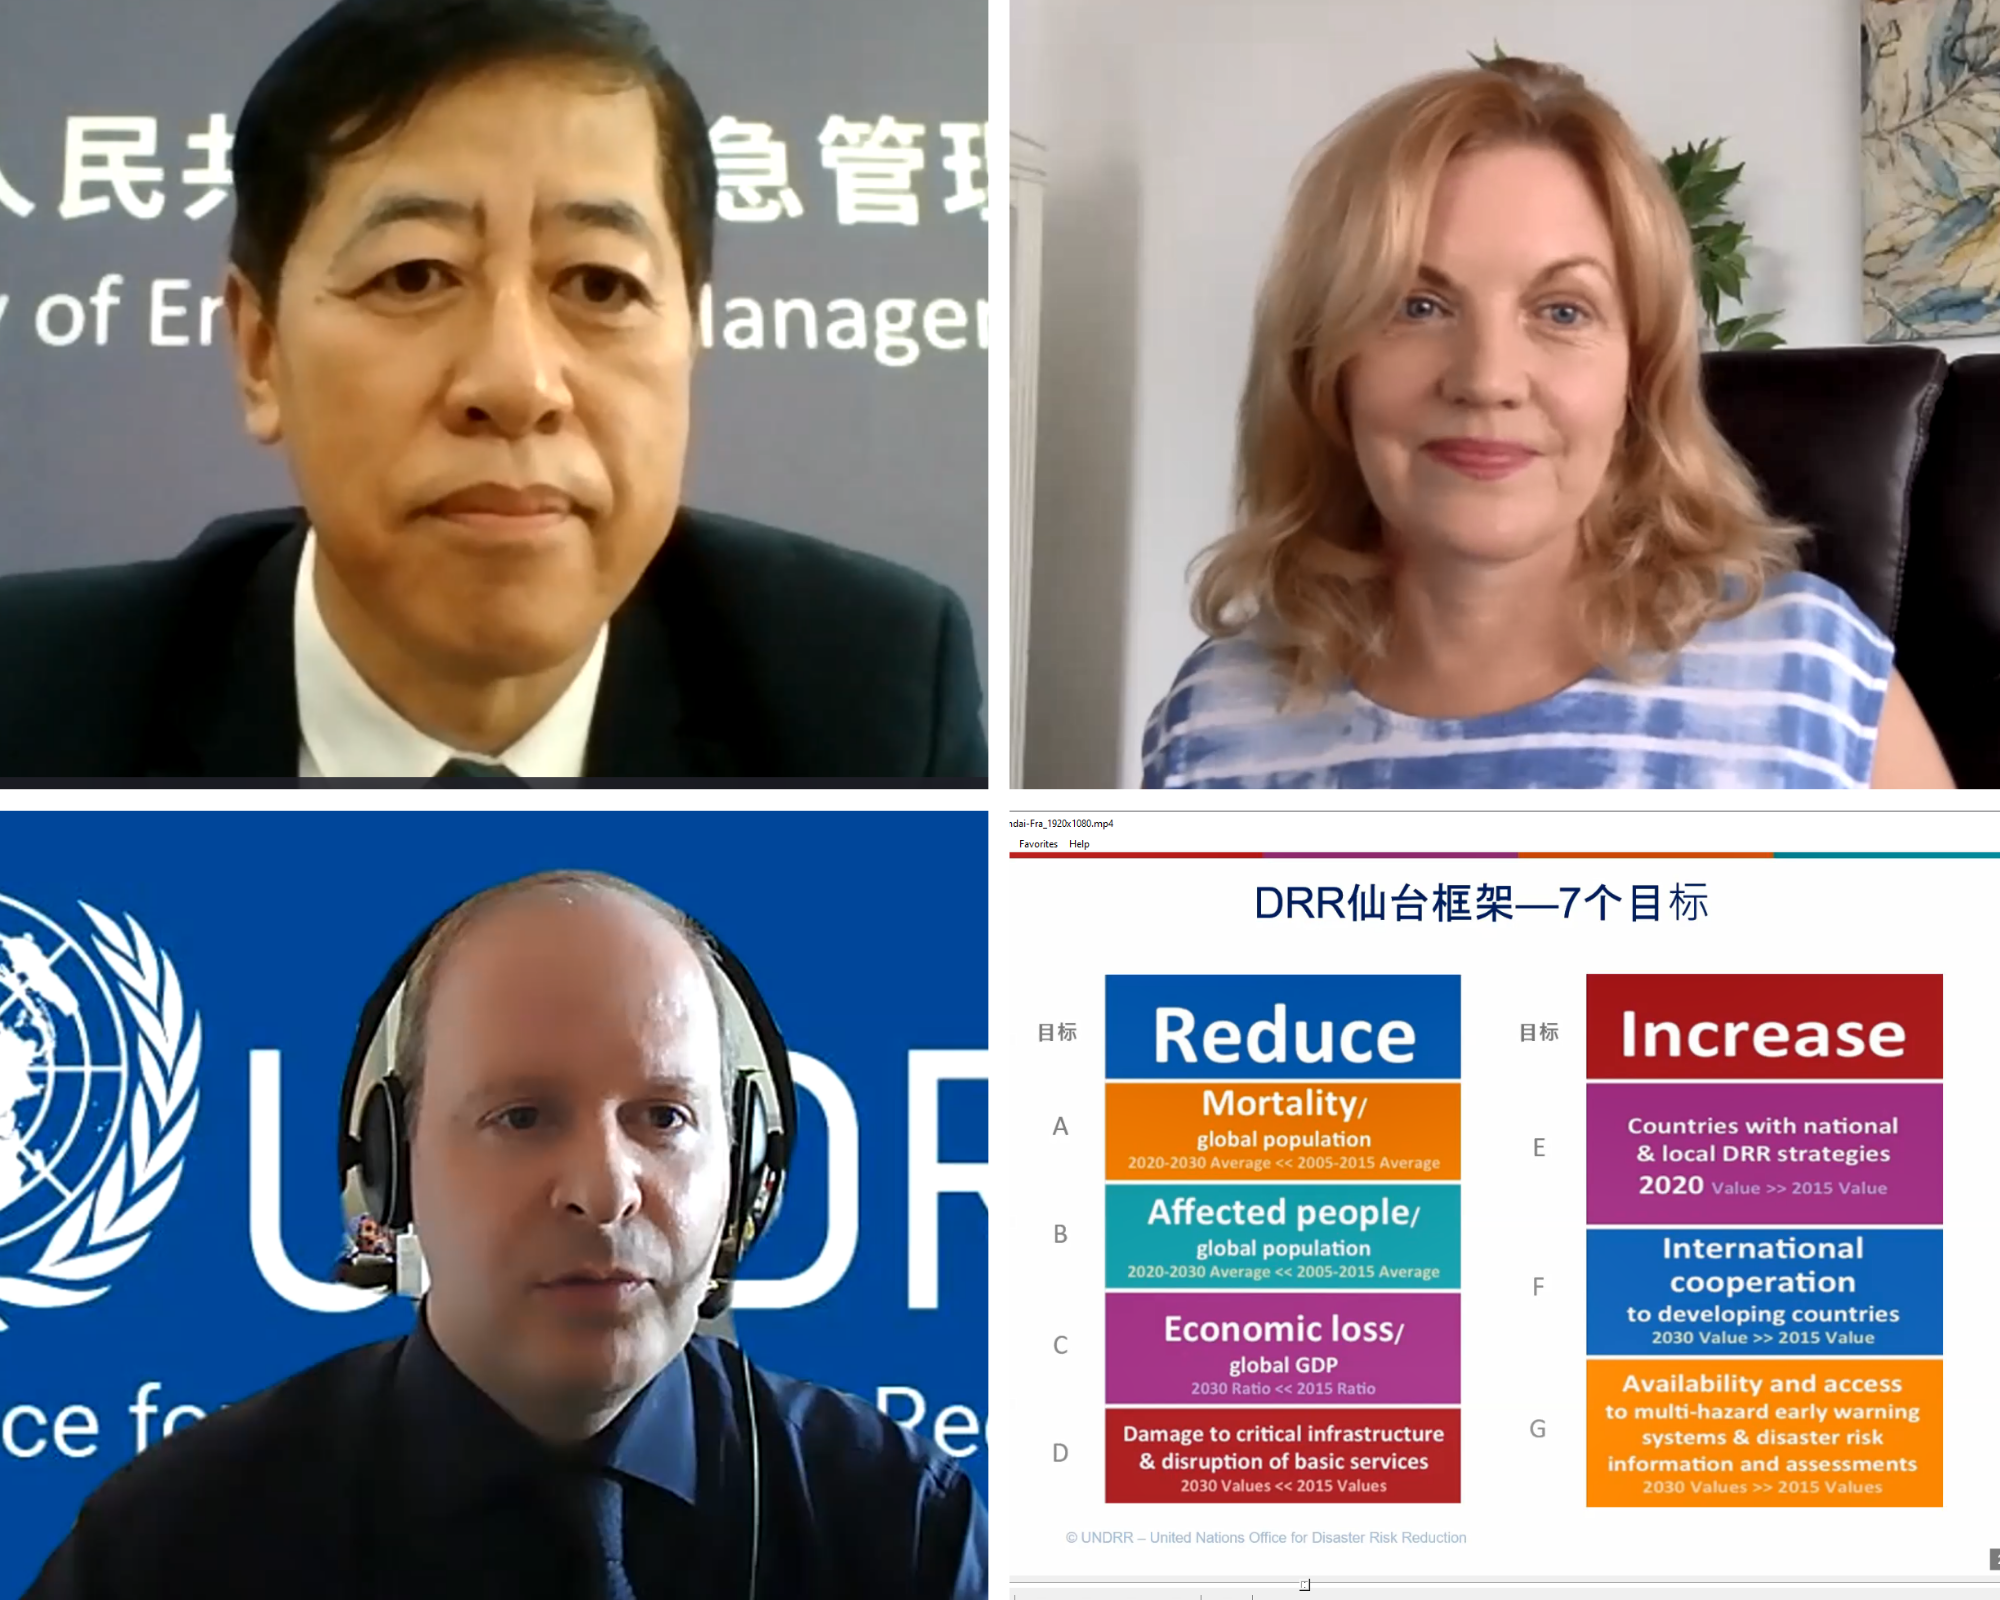 Images from the online webinar of speakers and slides